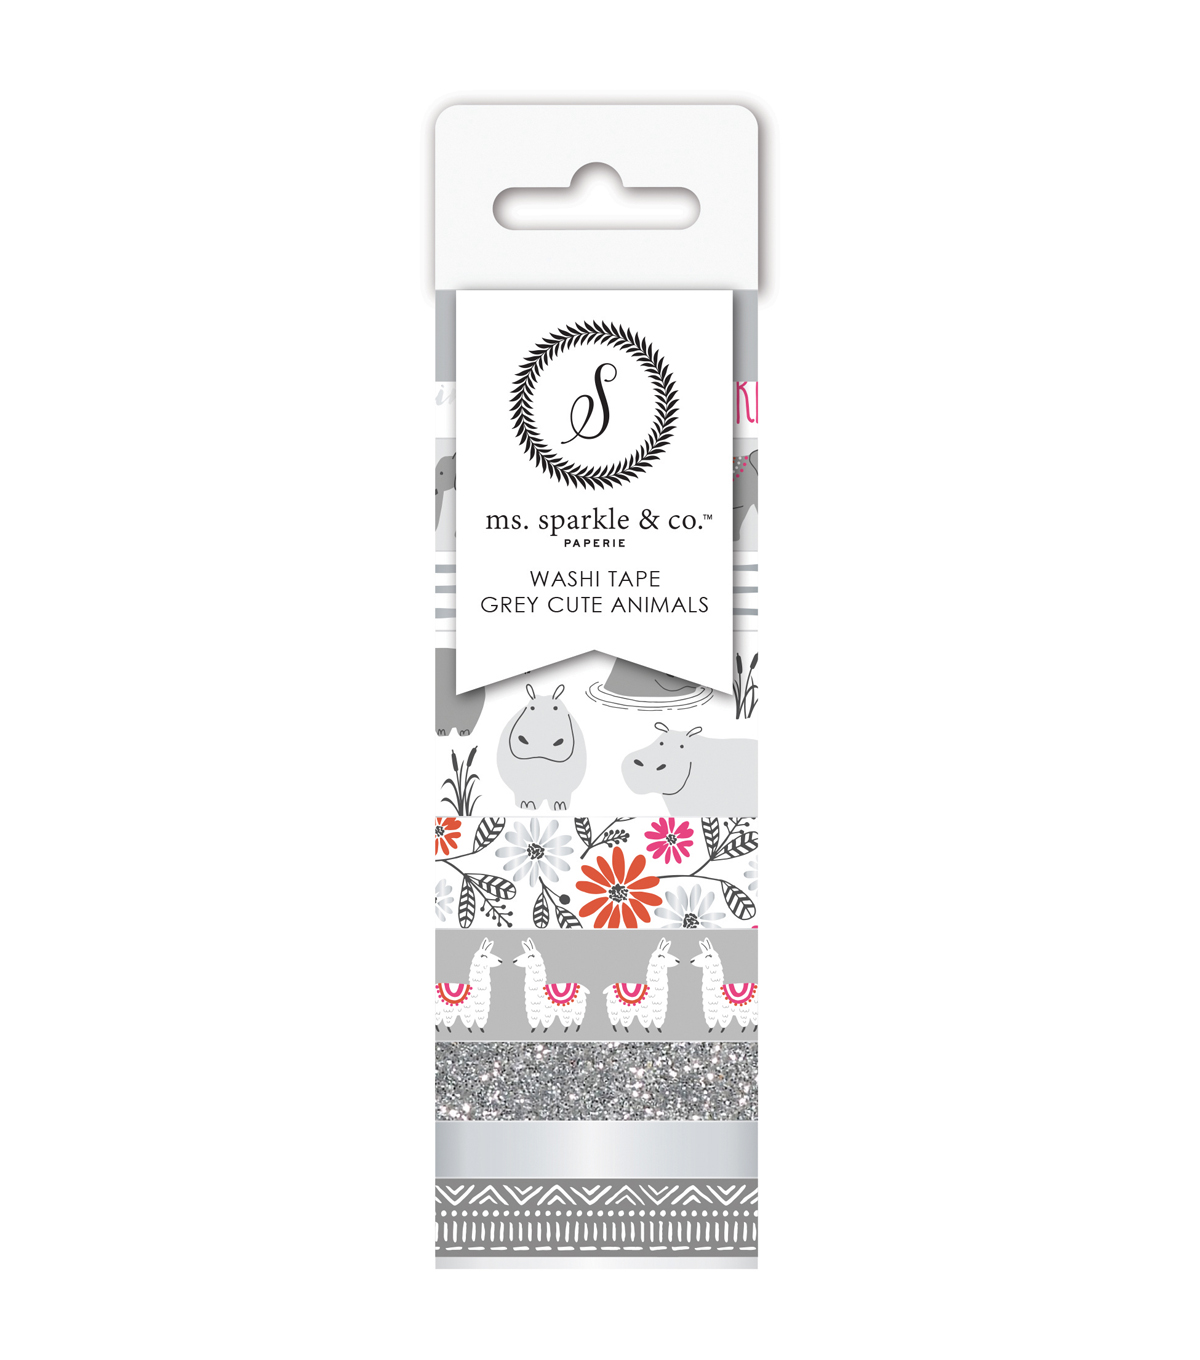 Ms. Sparkle & Co. 9 pk Washi Tapes-Gray Cute Animals